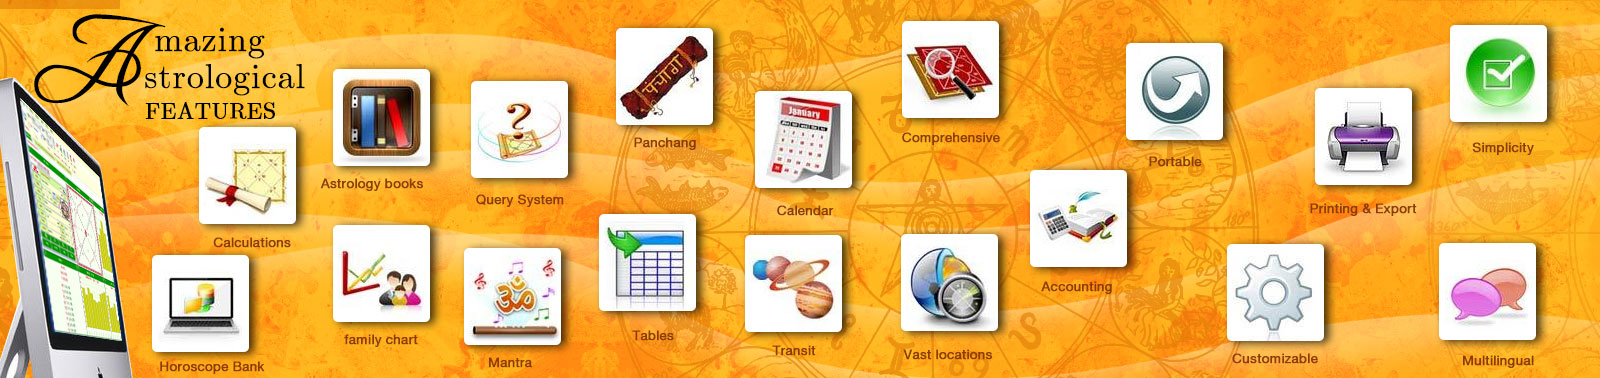 Amazing astrological feature of kundli software leostar